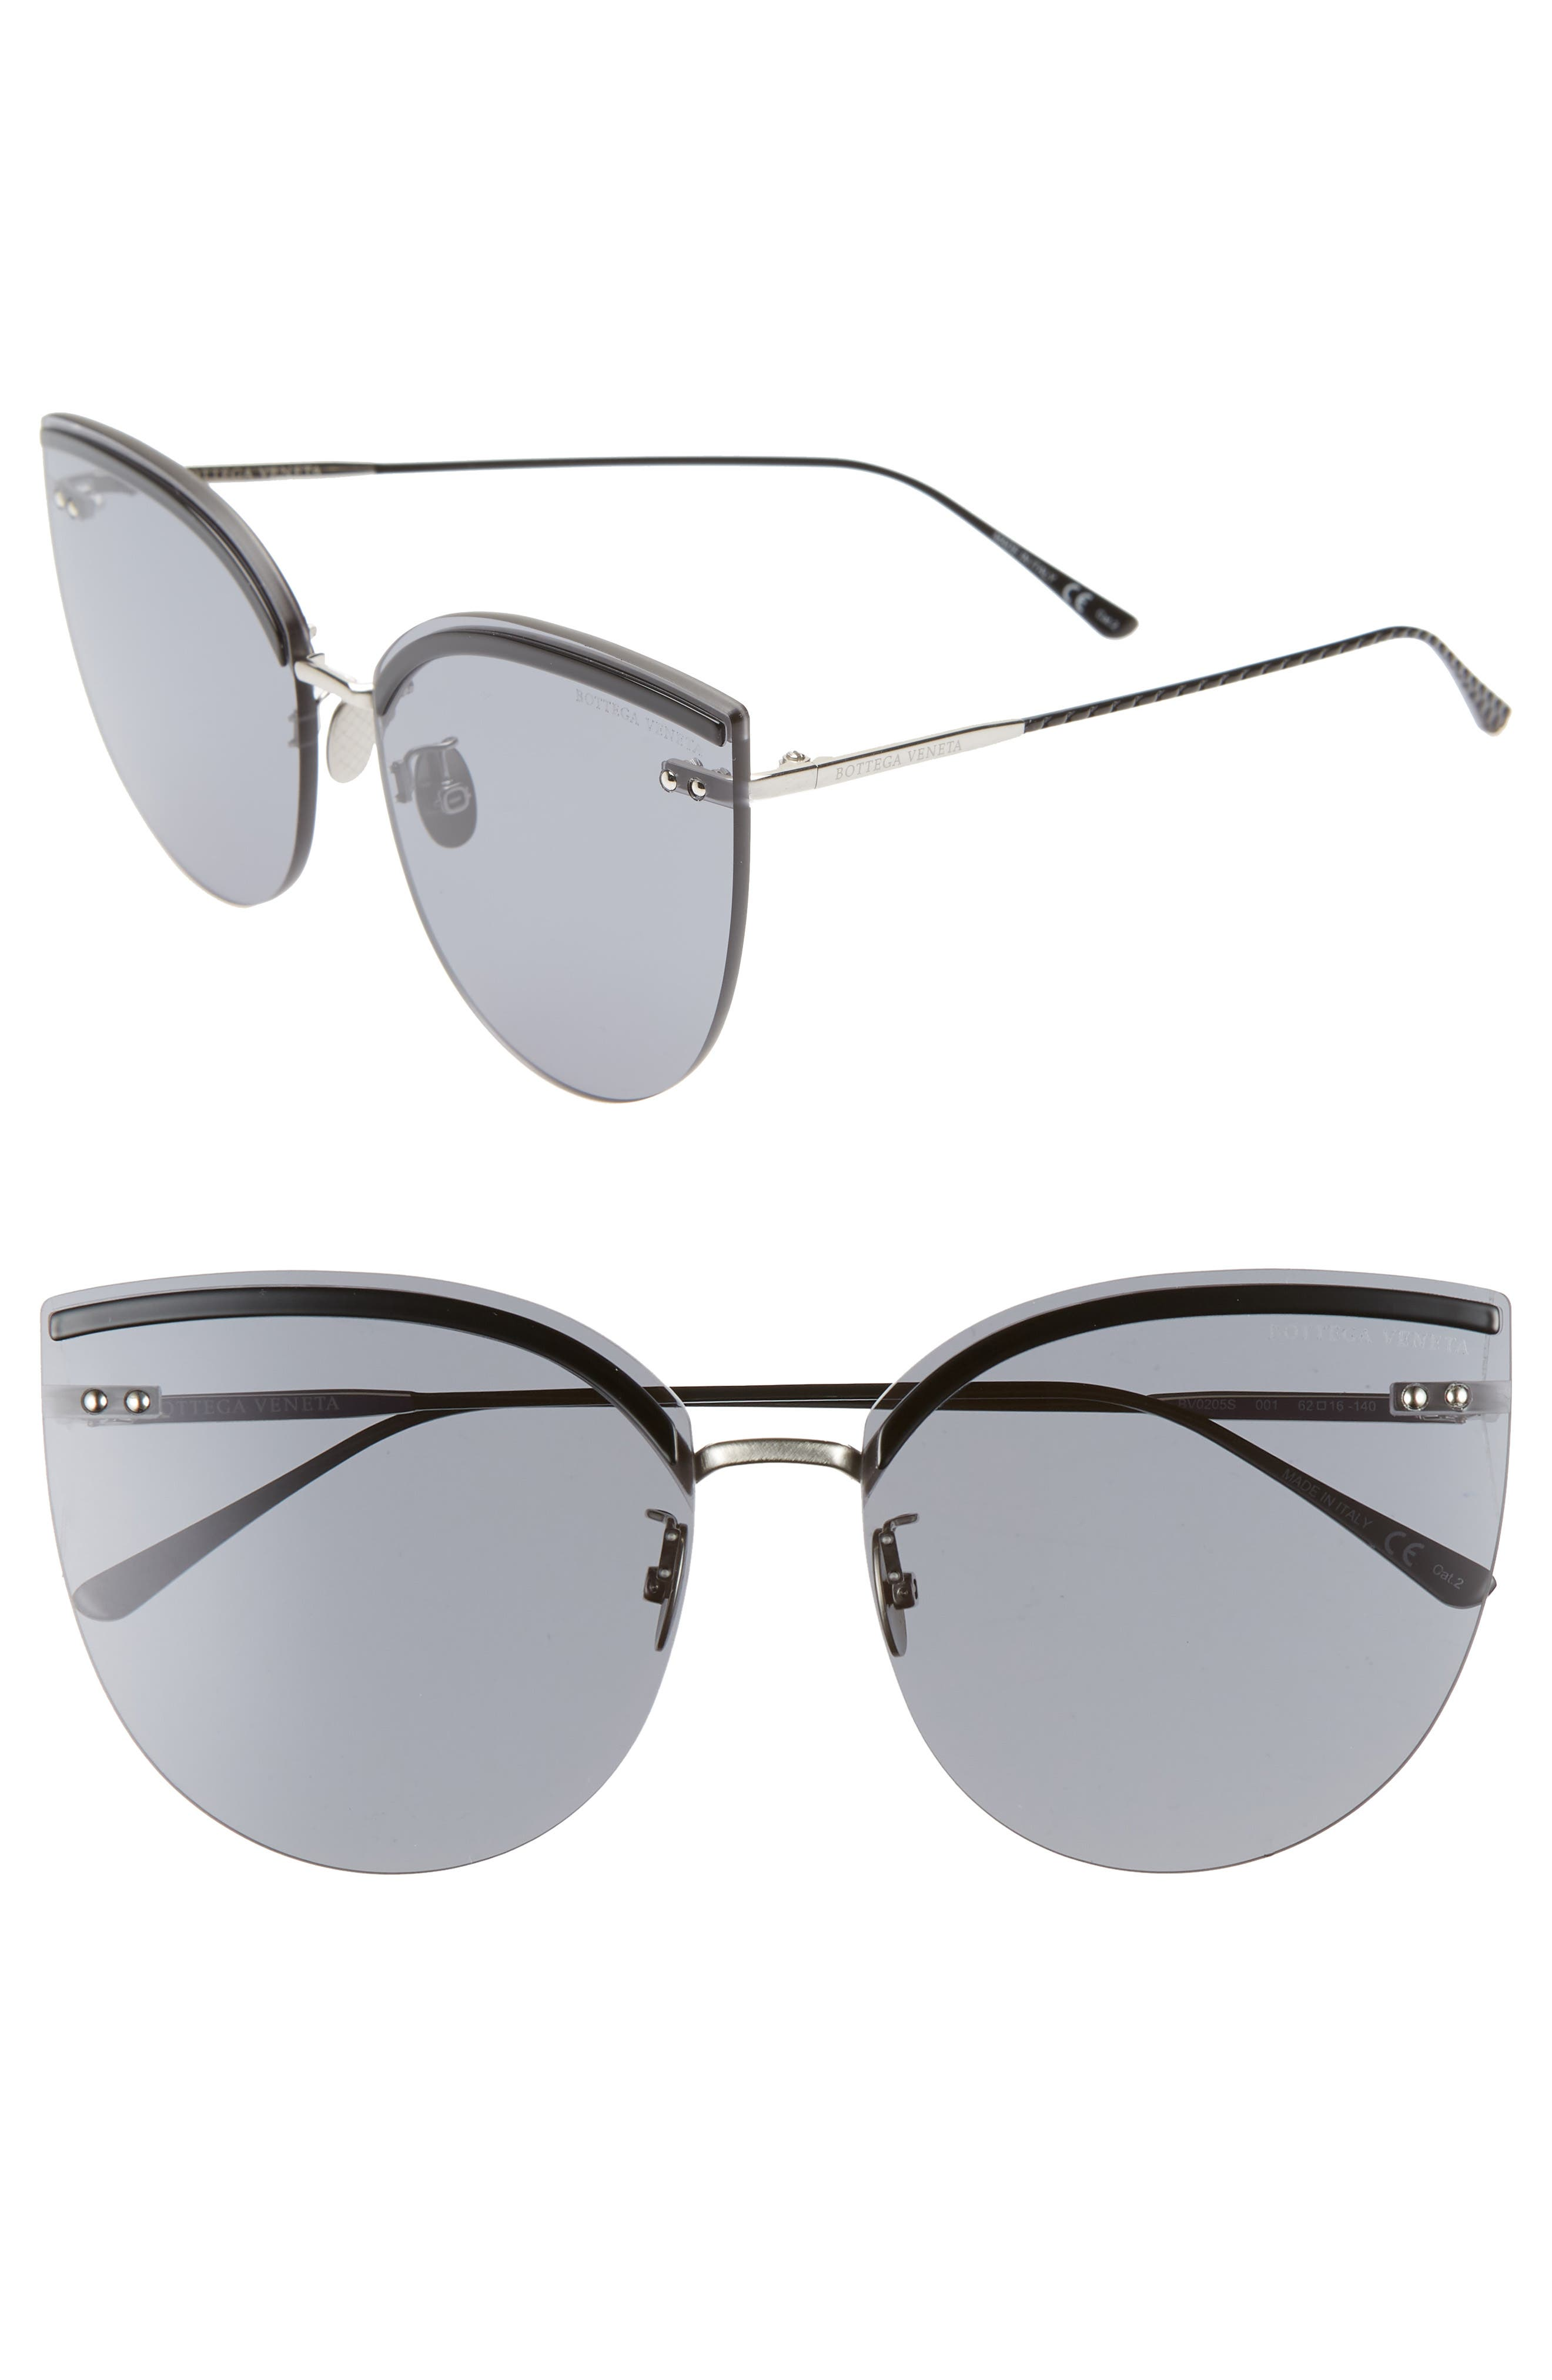 62mm Oversize Rimless Cat Eye Sunglasses, Main, color, SILVER/ BLACK